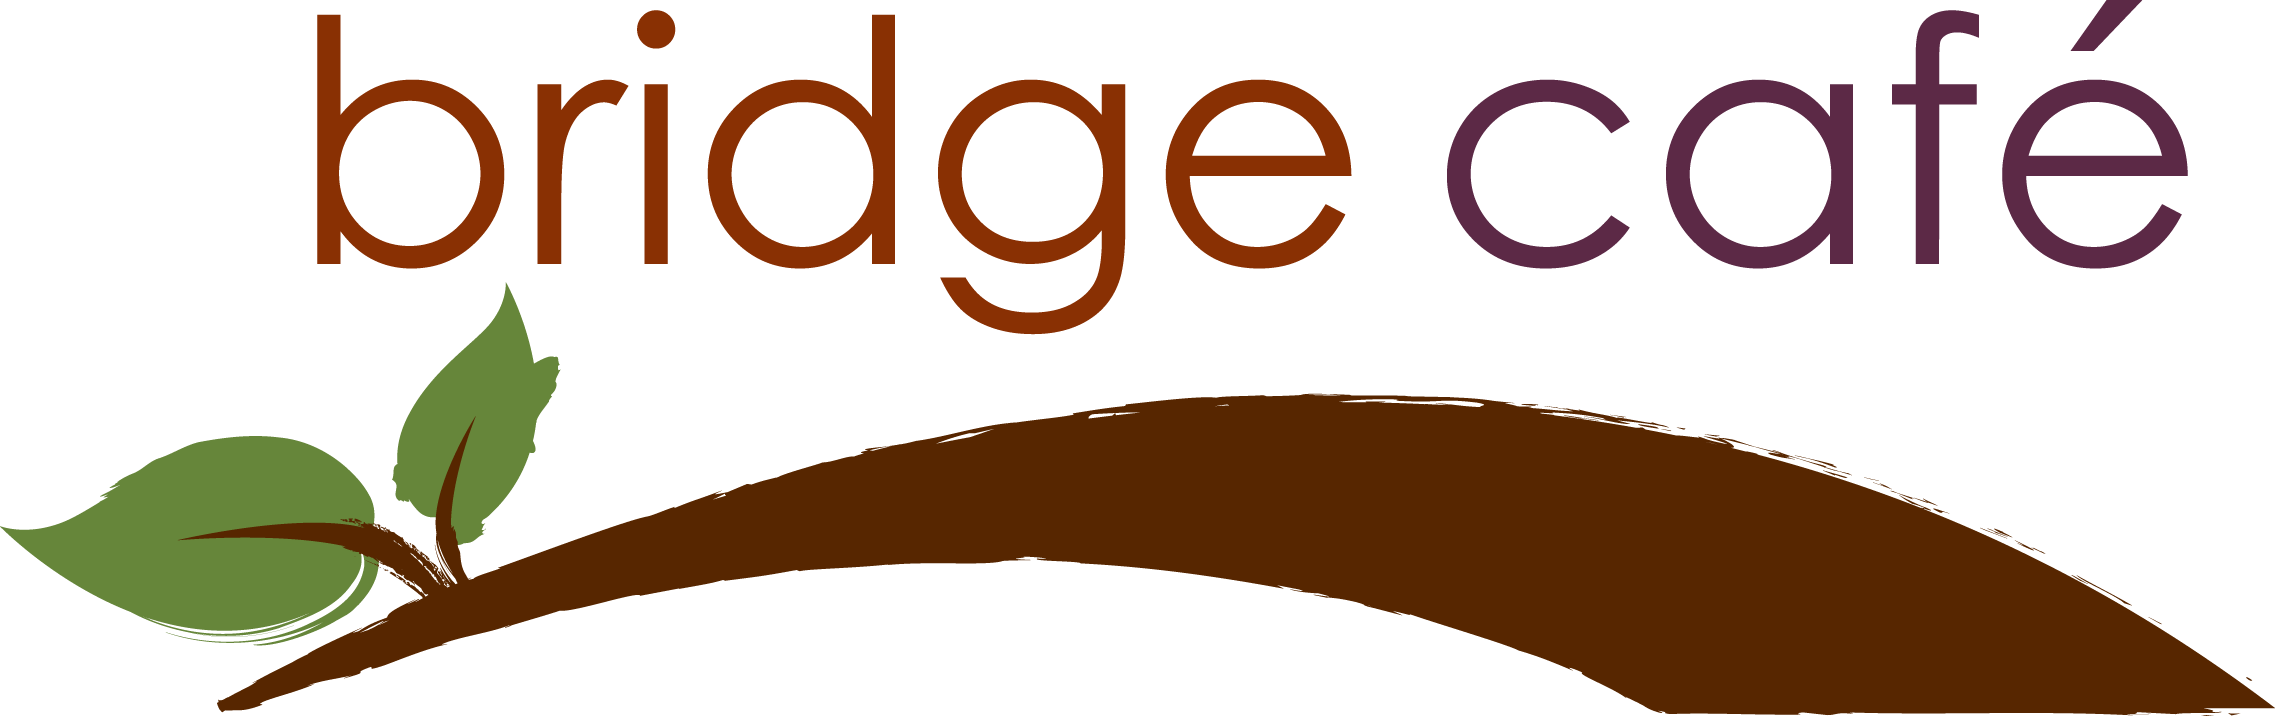 Bridge Cafe logo